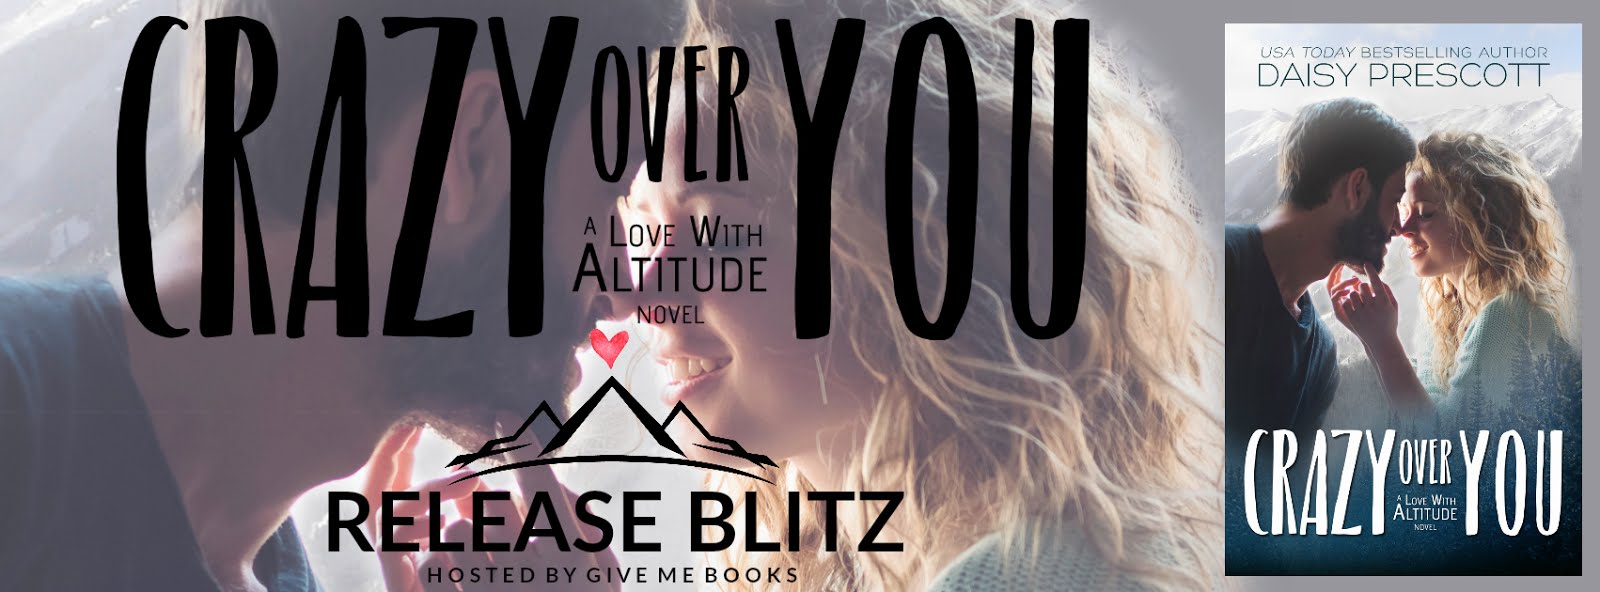 Crazy Over You Release Blitz